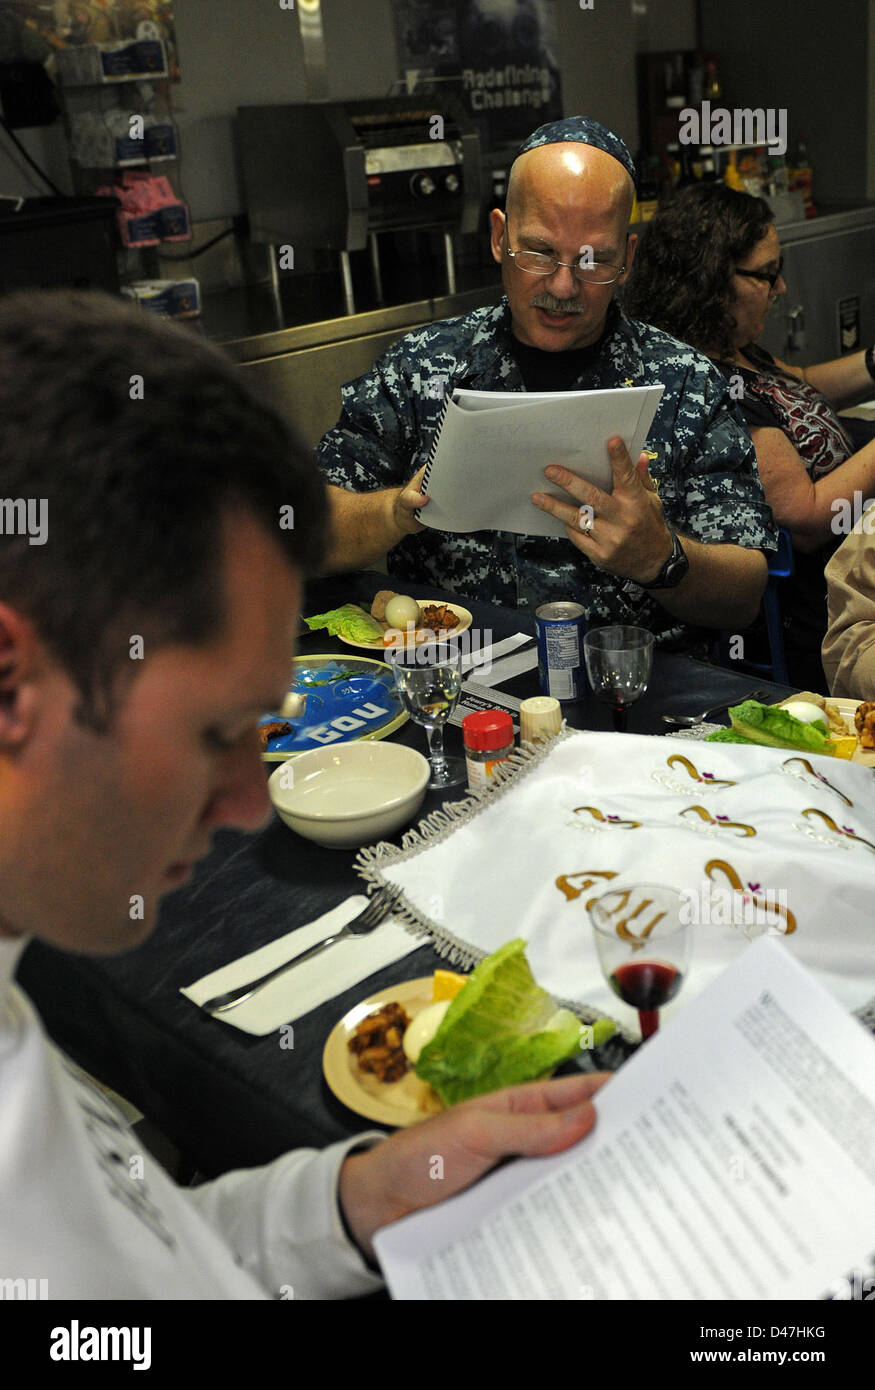 Sailors conduct a Siddur during a Passover ceremony. - Stock Image